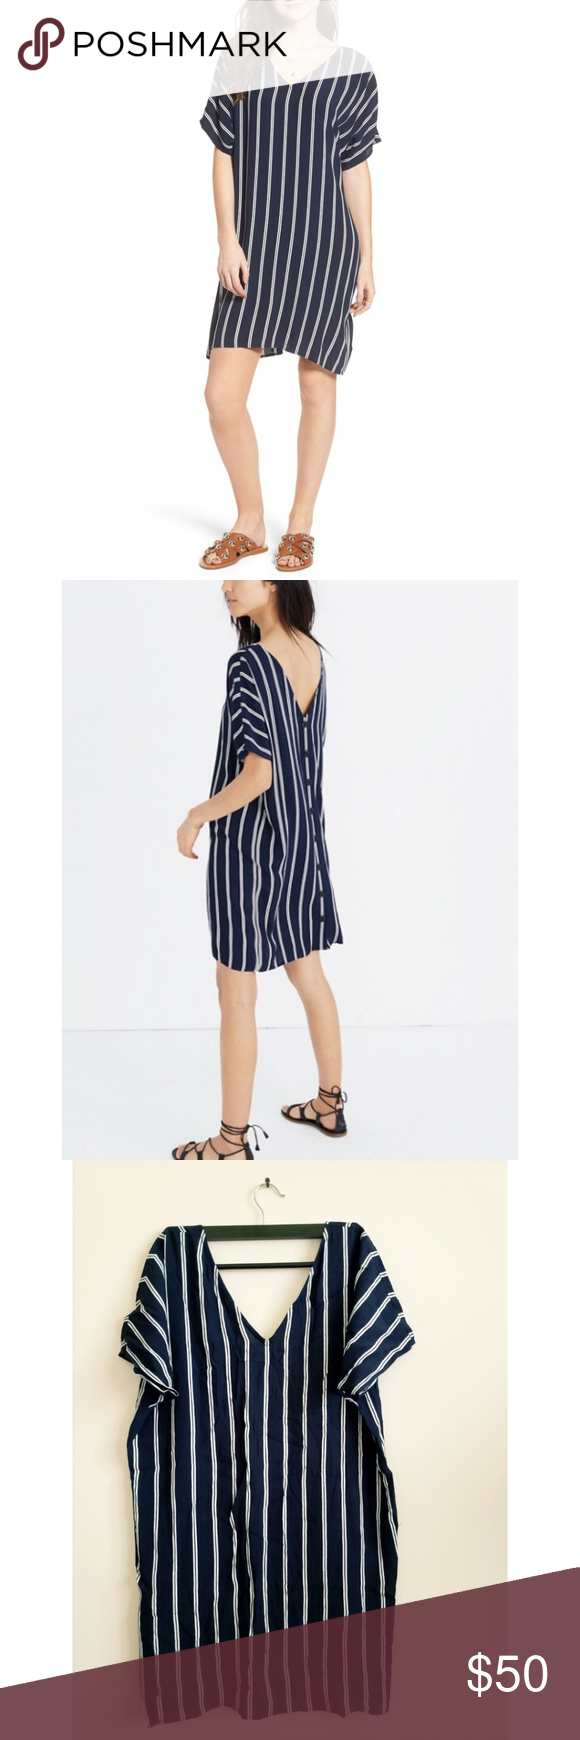 bcfe13264 Madewell Stripe Plaza Dress Made of drapey striped fabric, this  throw-on-and-go dress is a real two-for-one—you can wear it with the  buttons to the front or ...